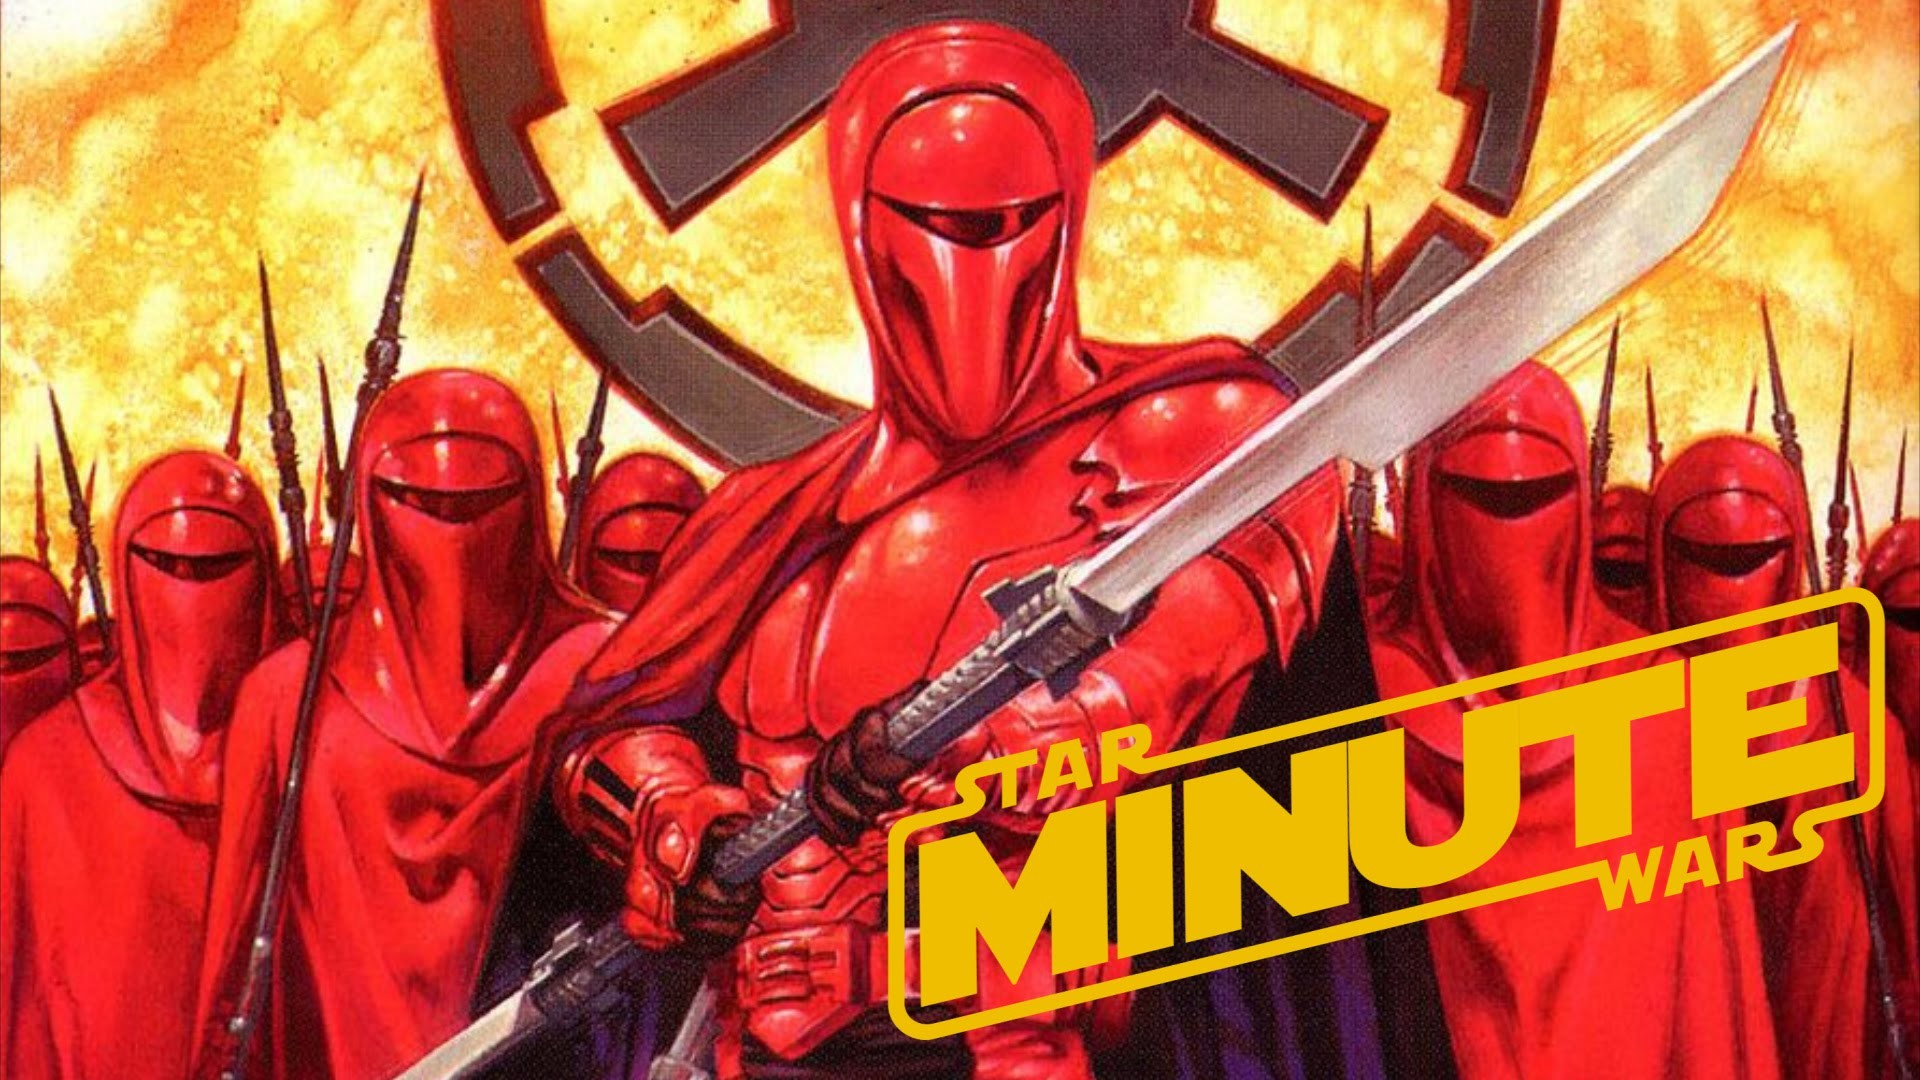 Star Wars Imperial Guard Pictures to Pin on Pinterest – PinsDaddy